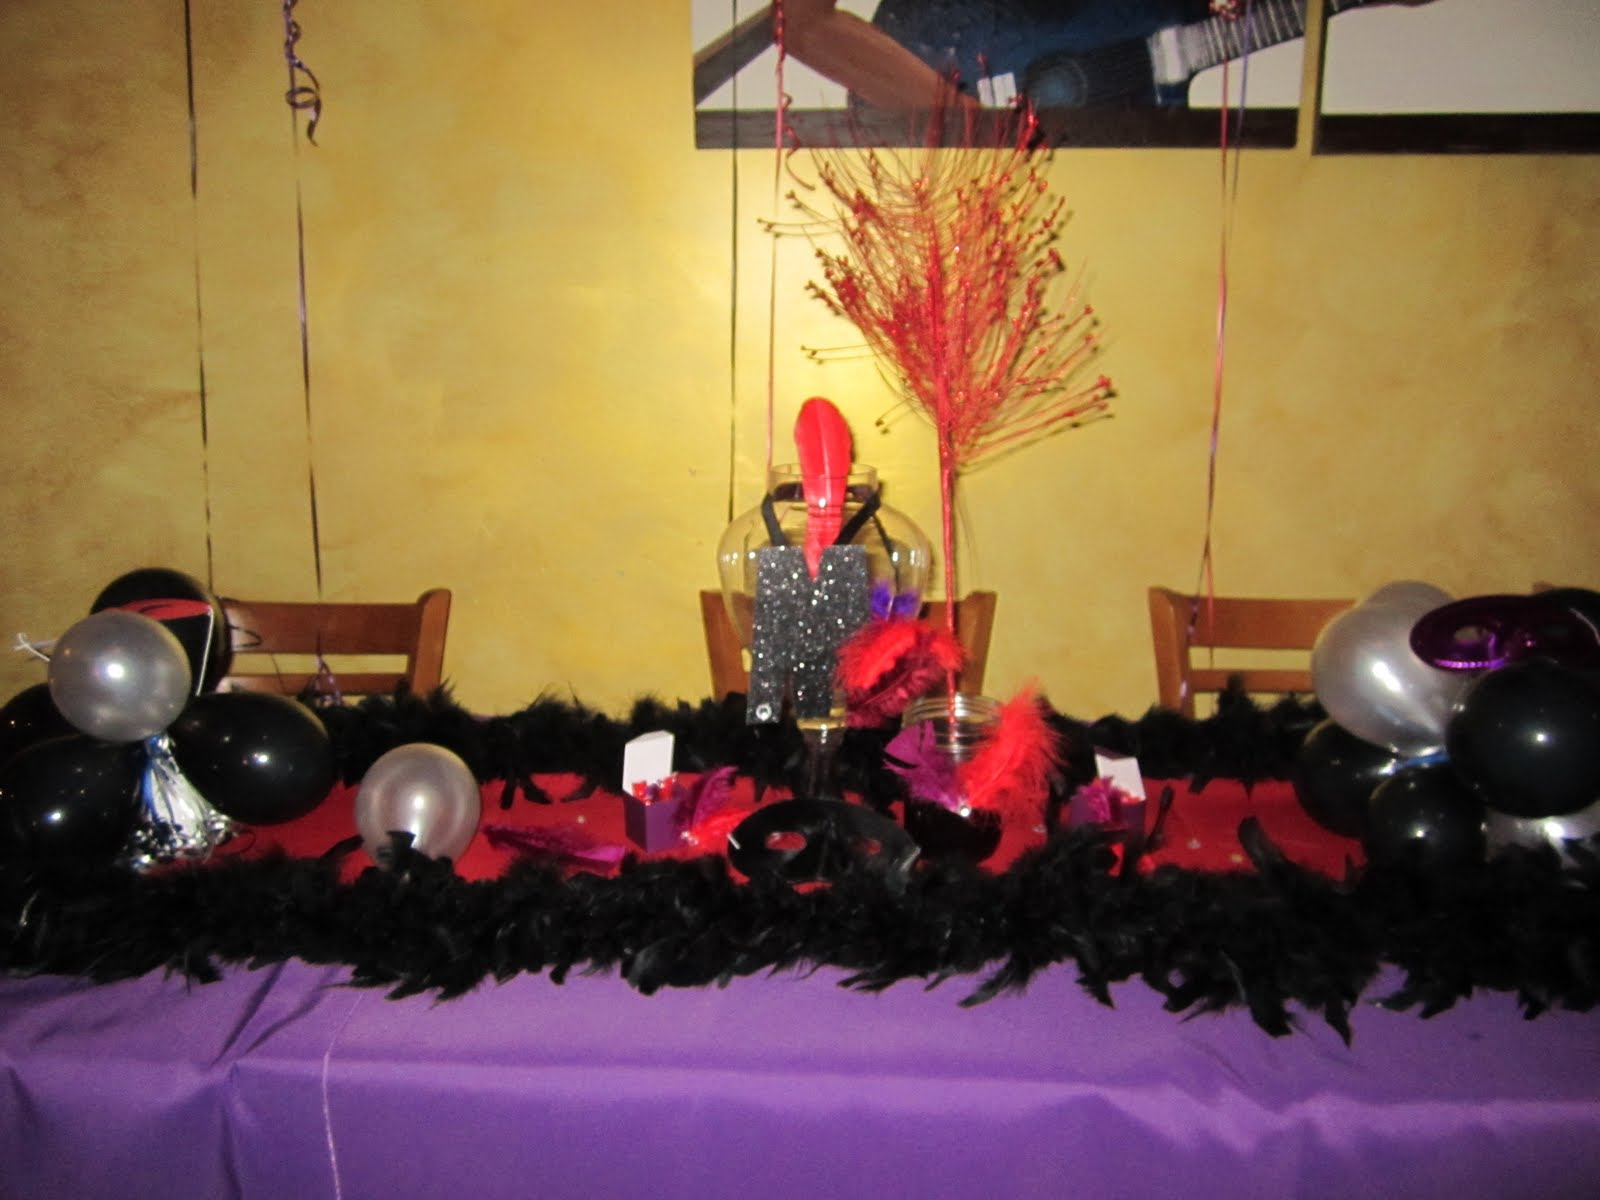 Burlesque Party Decorations http://partywithak.blogspot.com/2012/01/how-to-decorate-birthday-dinner-red.html